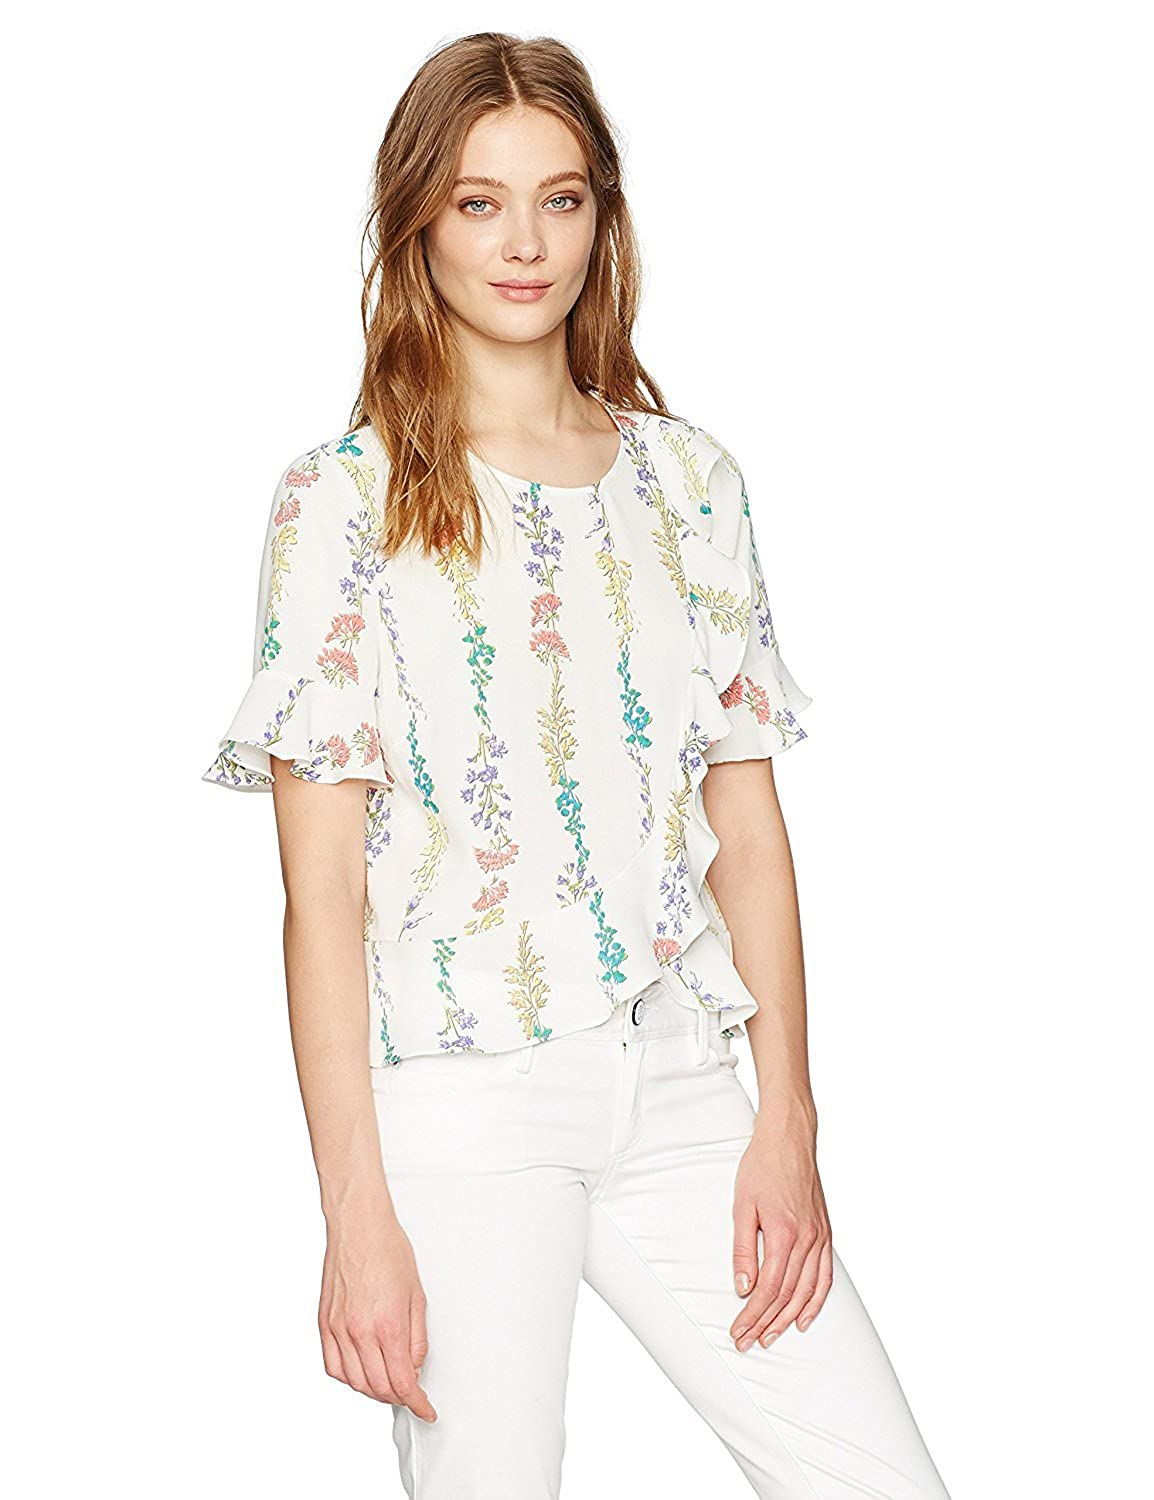 BCBGMAXAZRIA Women's Kenzie Top Off White Combo M [並行輸入品] B075CJSTPG